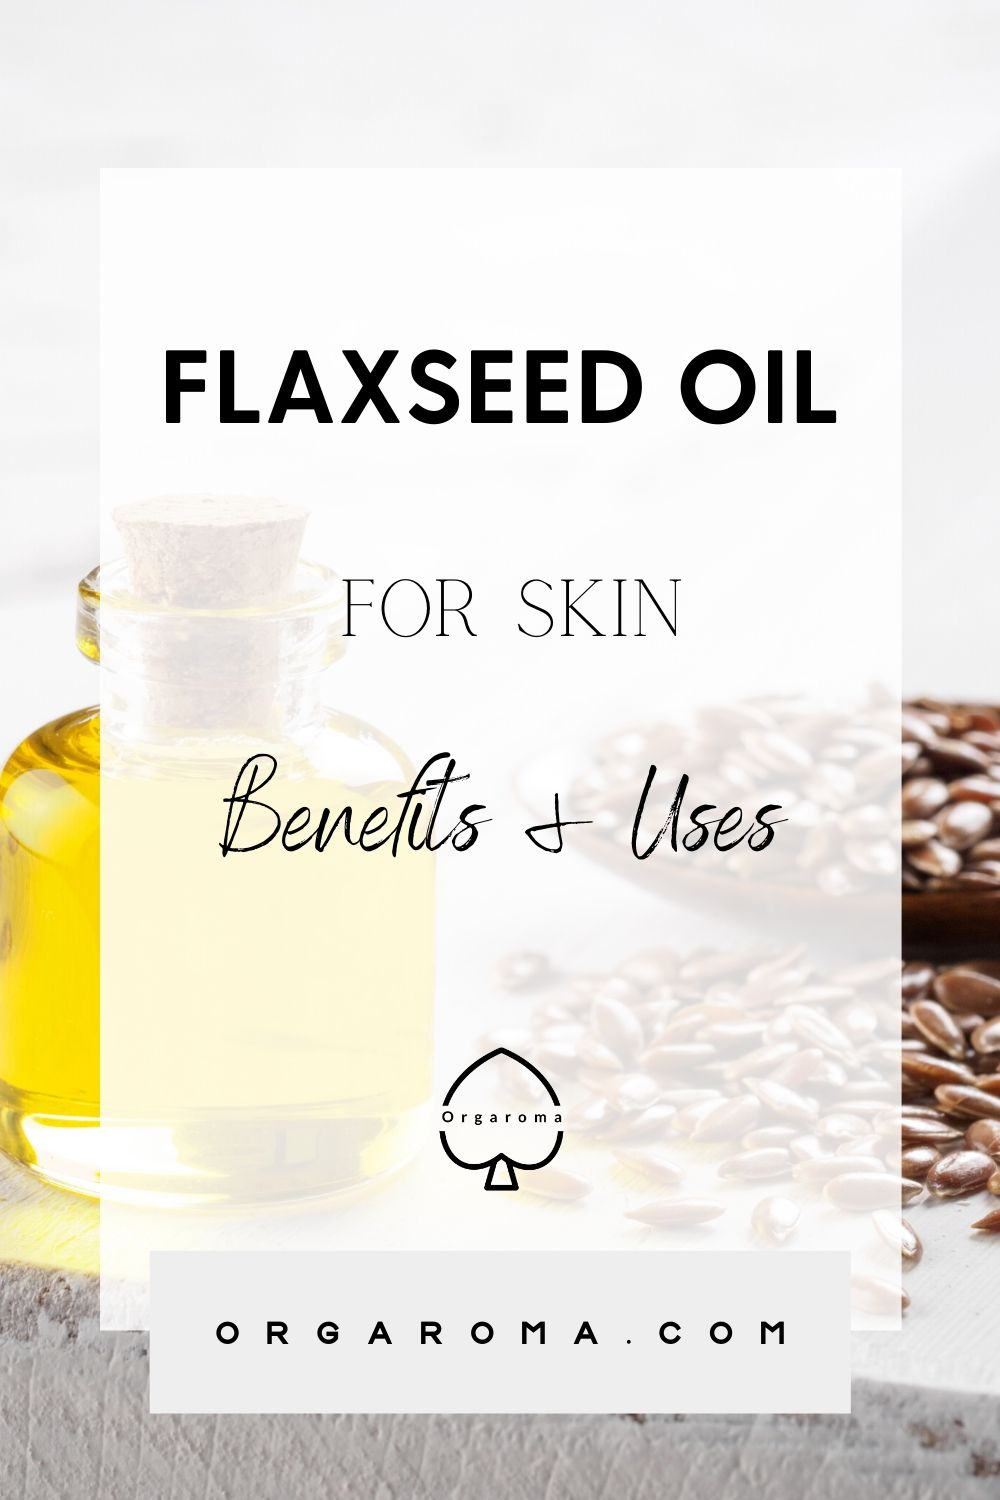 Flaxseed oil for skin benefits and uses